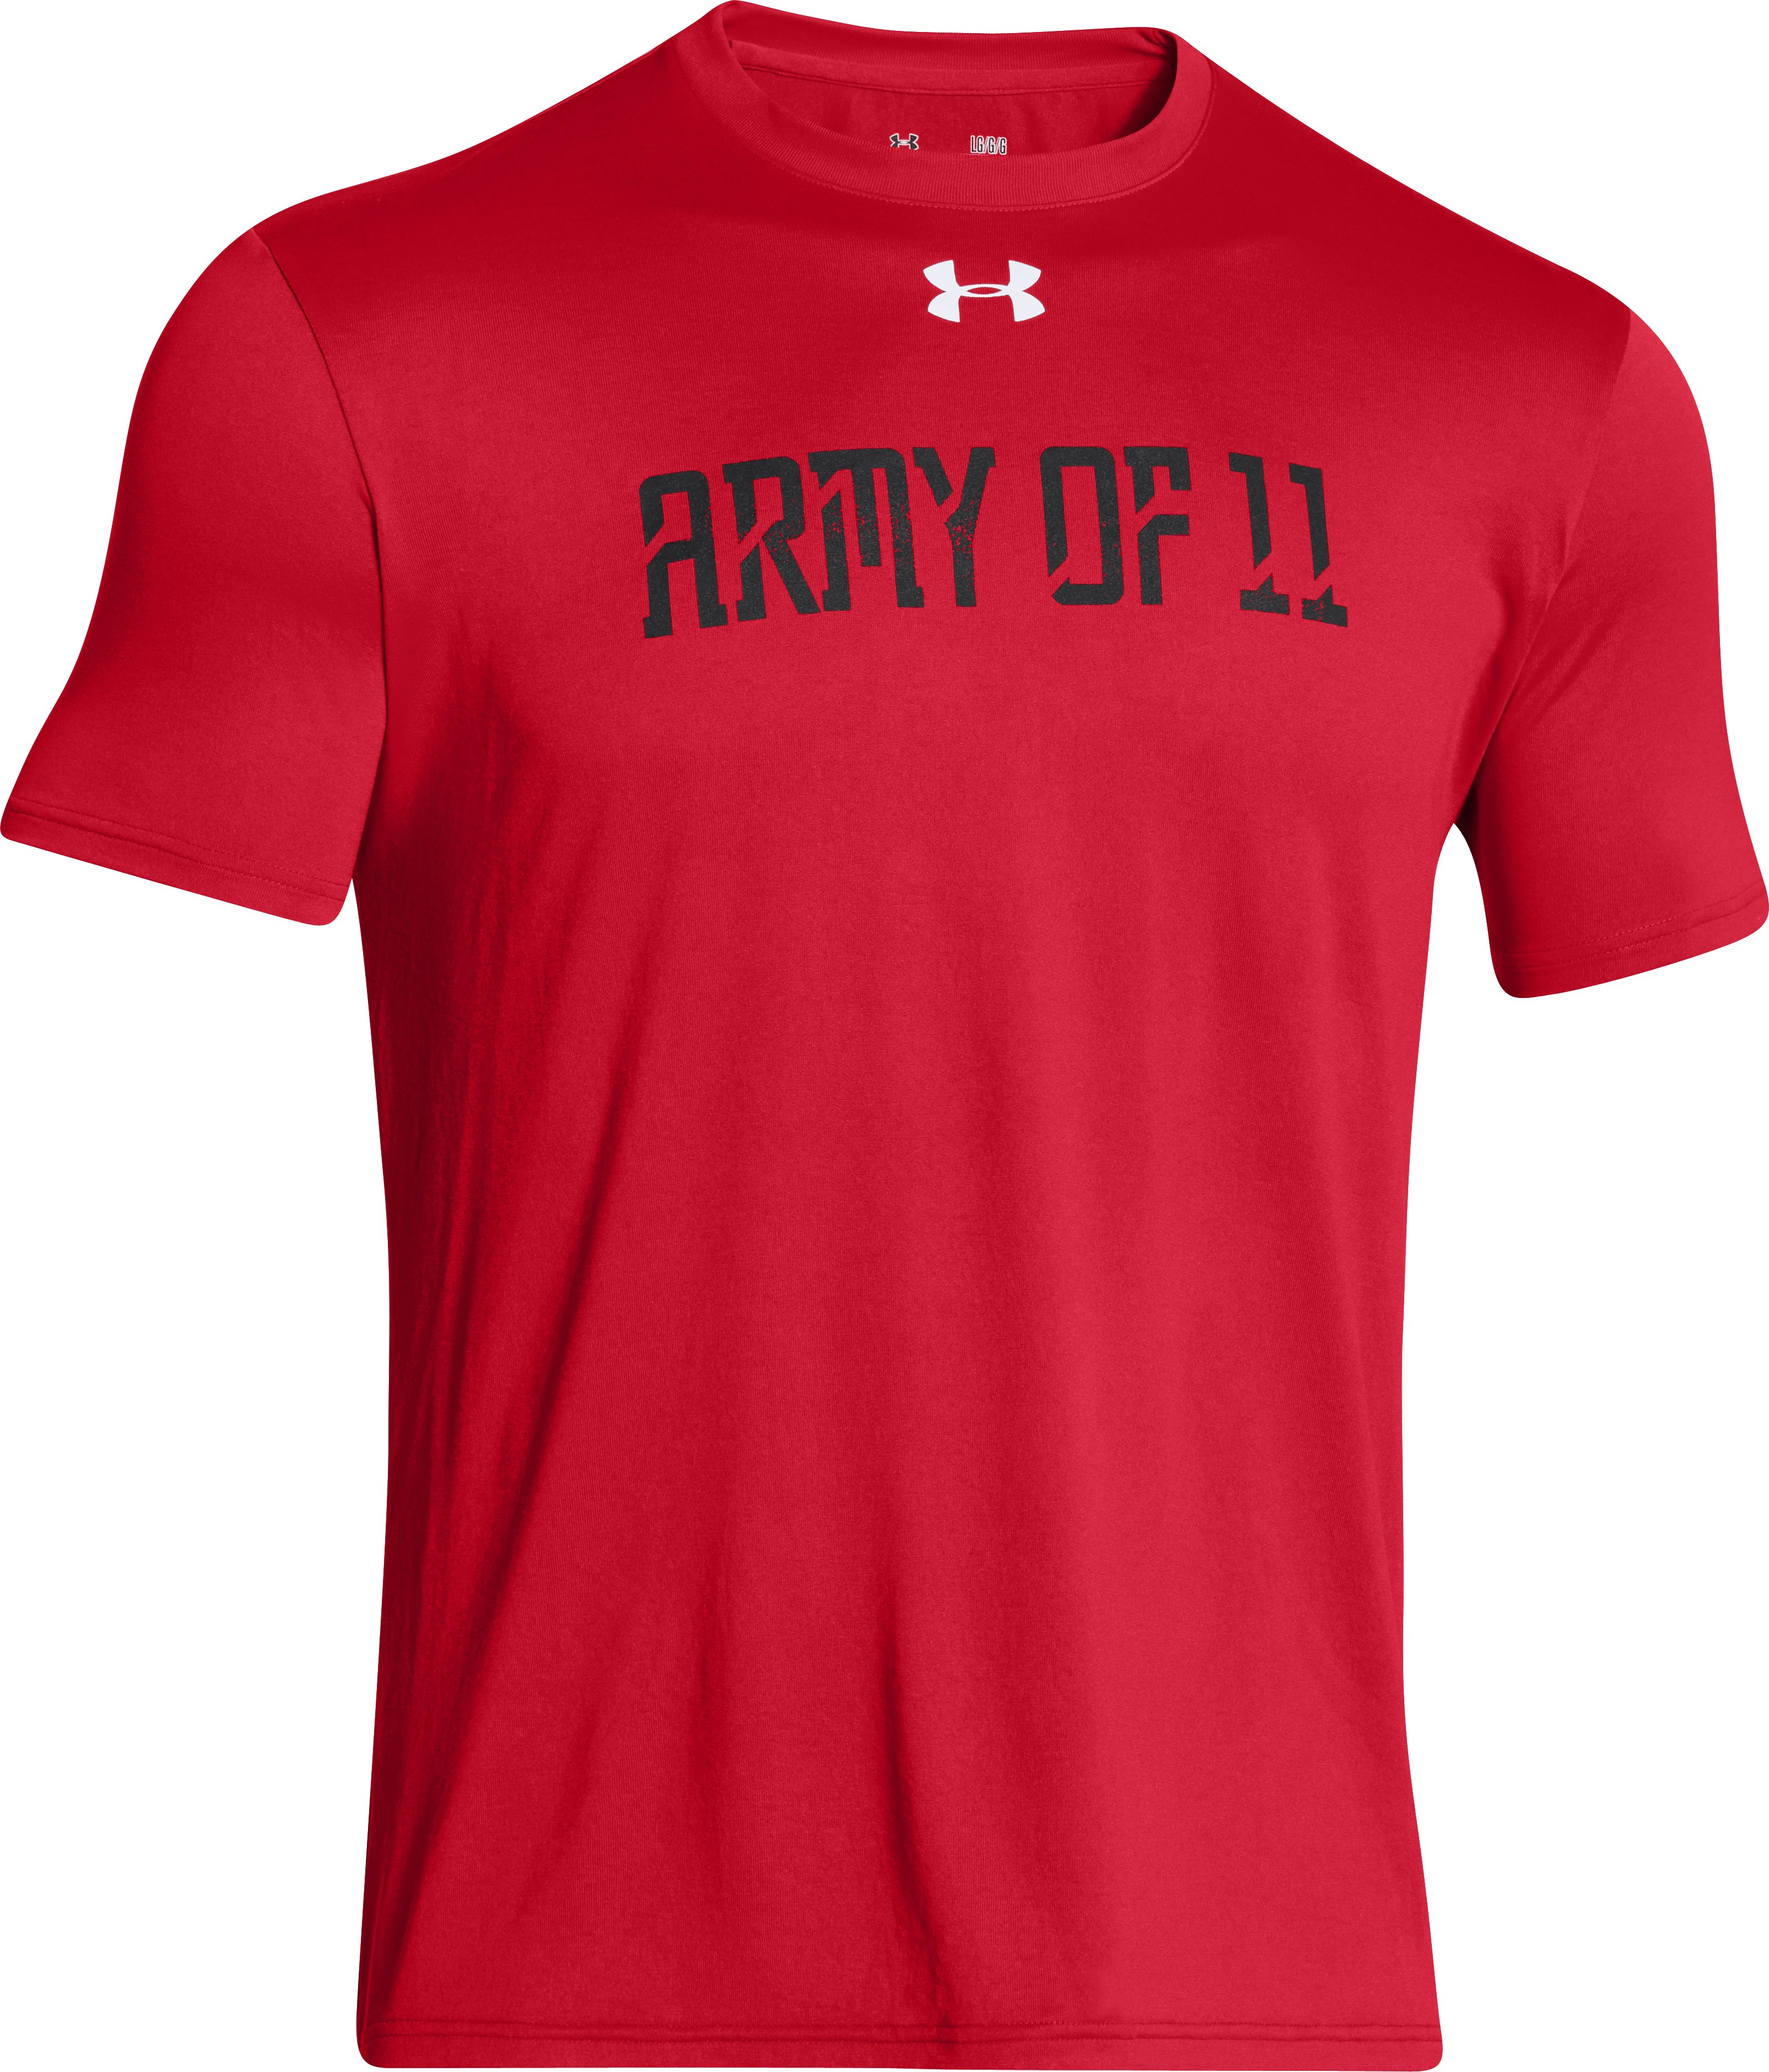 Men's UA Army Of 11 T-Shirt, Red